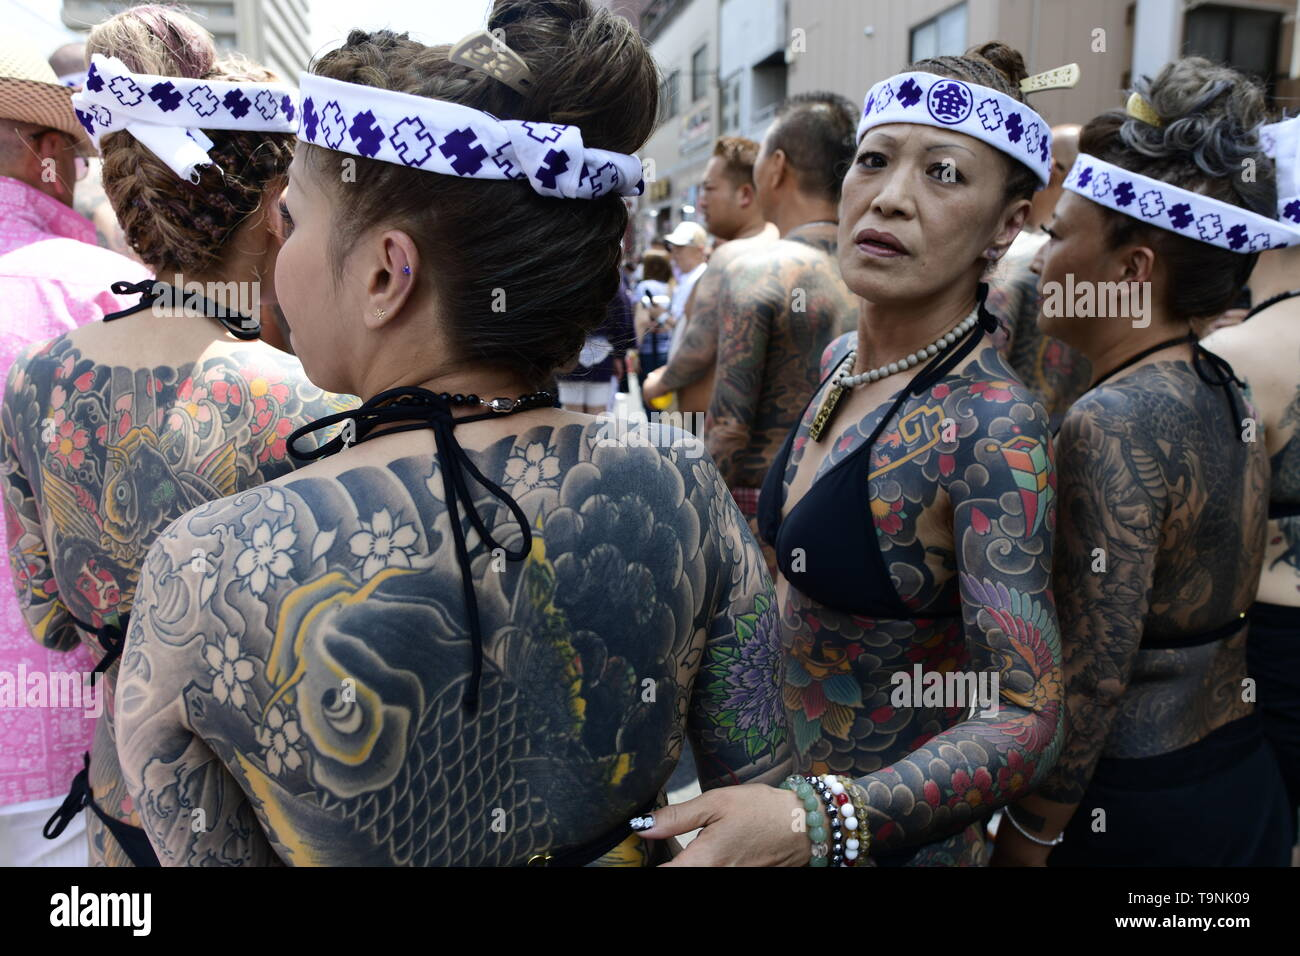 """TOKYO, JAPAN - MAY 18: Heavily tattooed Japanese women stand in the street as they wait for the portable shrine in the street of Asakusa during """"Sanja Matsuri"""" on May 18, 2019 in Tokyo, Japan. A boisterous traditional mikoshi (portable shrine) is carried in the streets of Asakusa to bring goodluck, blessings and prosperity to the area and its inhabitants. (Photo: Richard Atrero de Guzman/ AFLO) Stock Photo"""